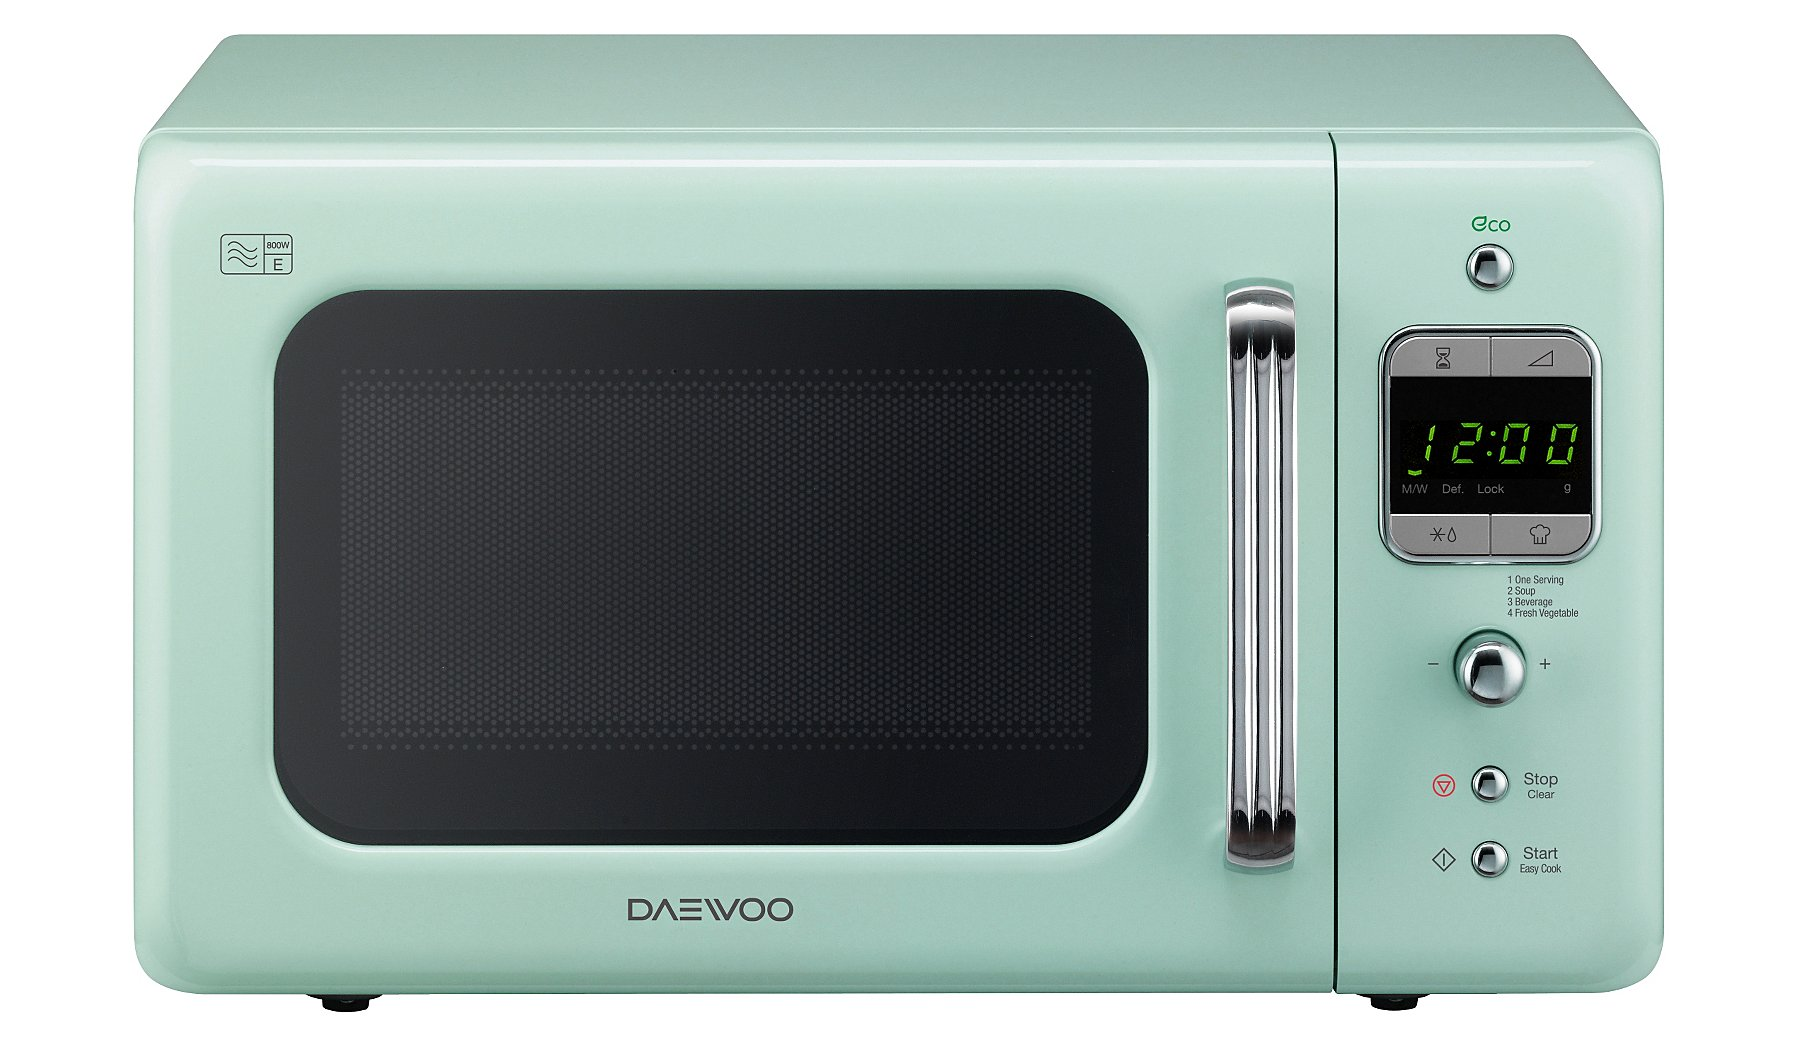 Uncategorized Asda Kitchen Liances Daewoo Retro 20l 800w Microwave Red Home Garden George At